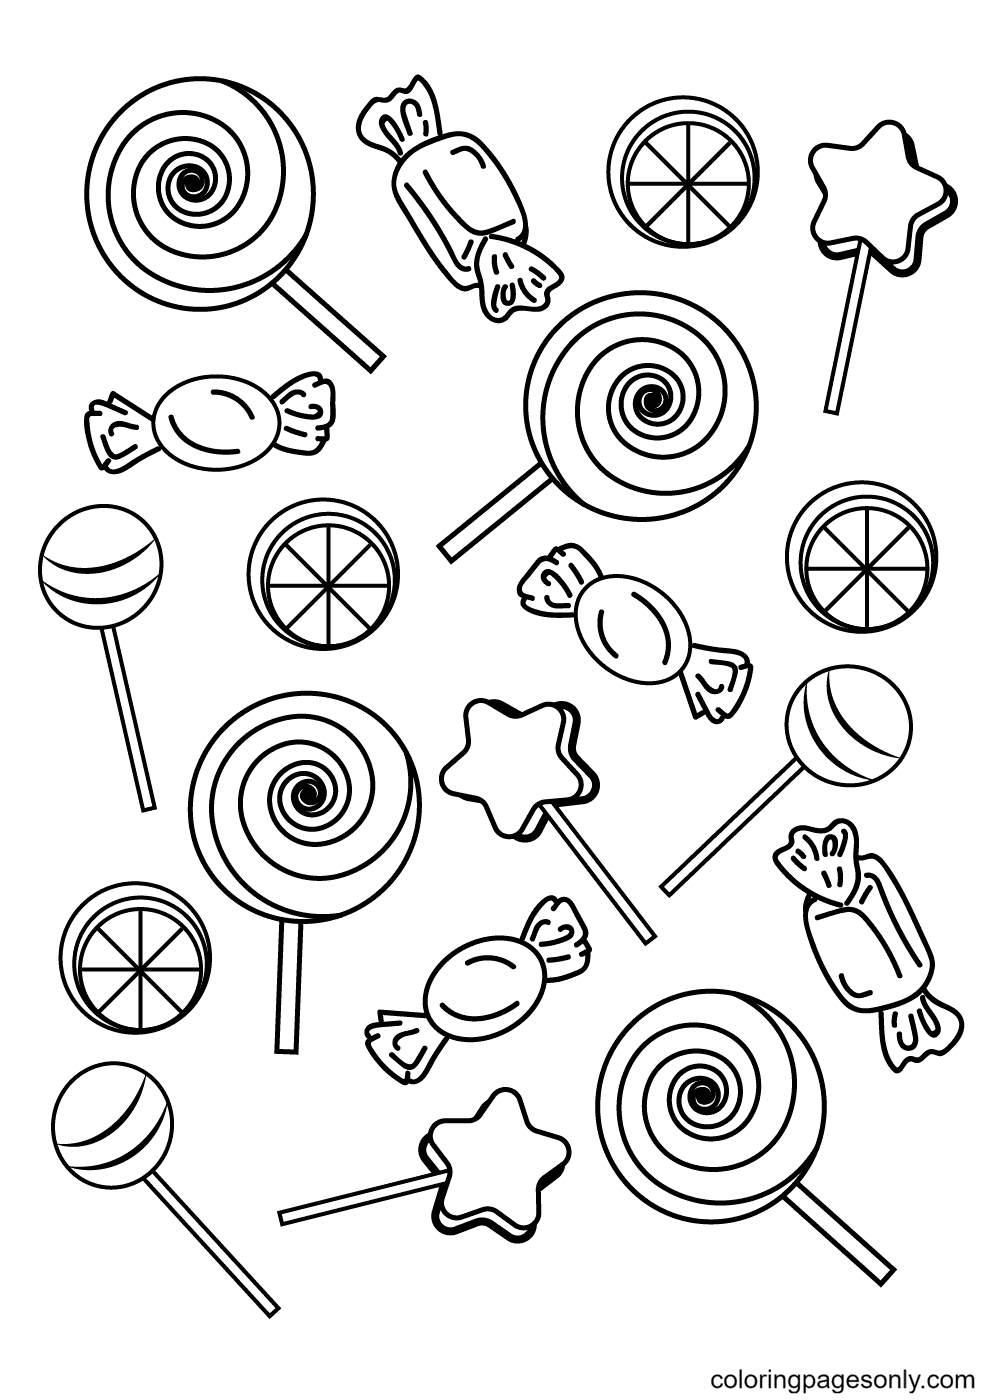 The World of Candies Coloring Page